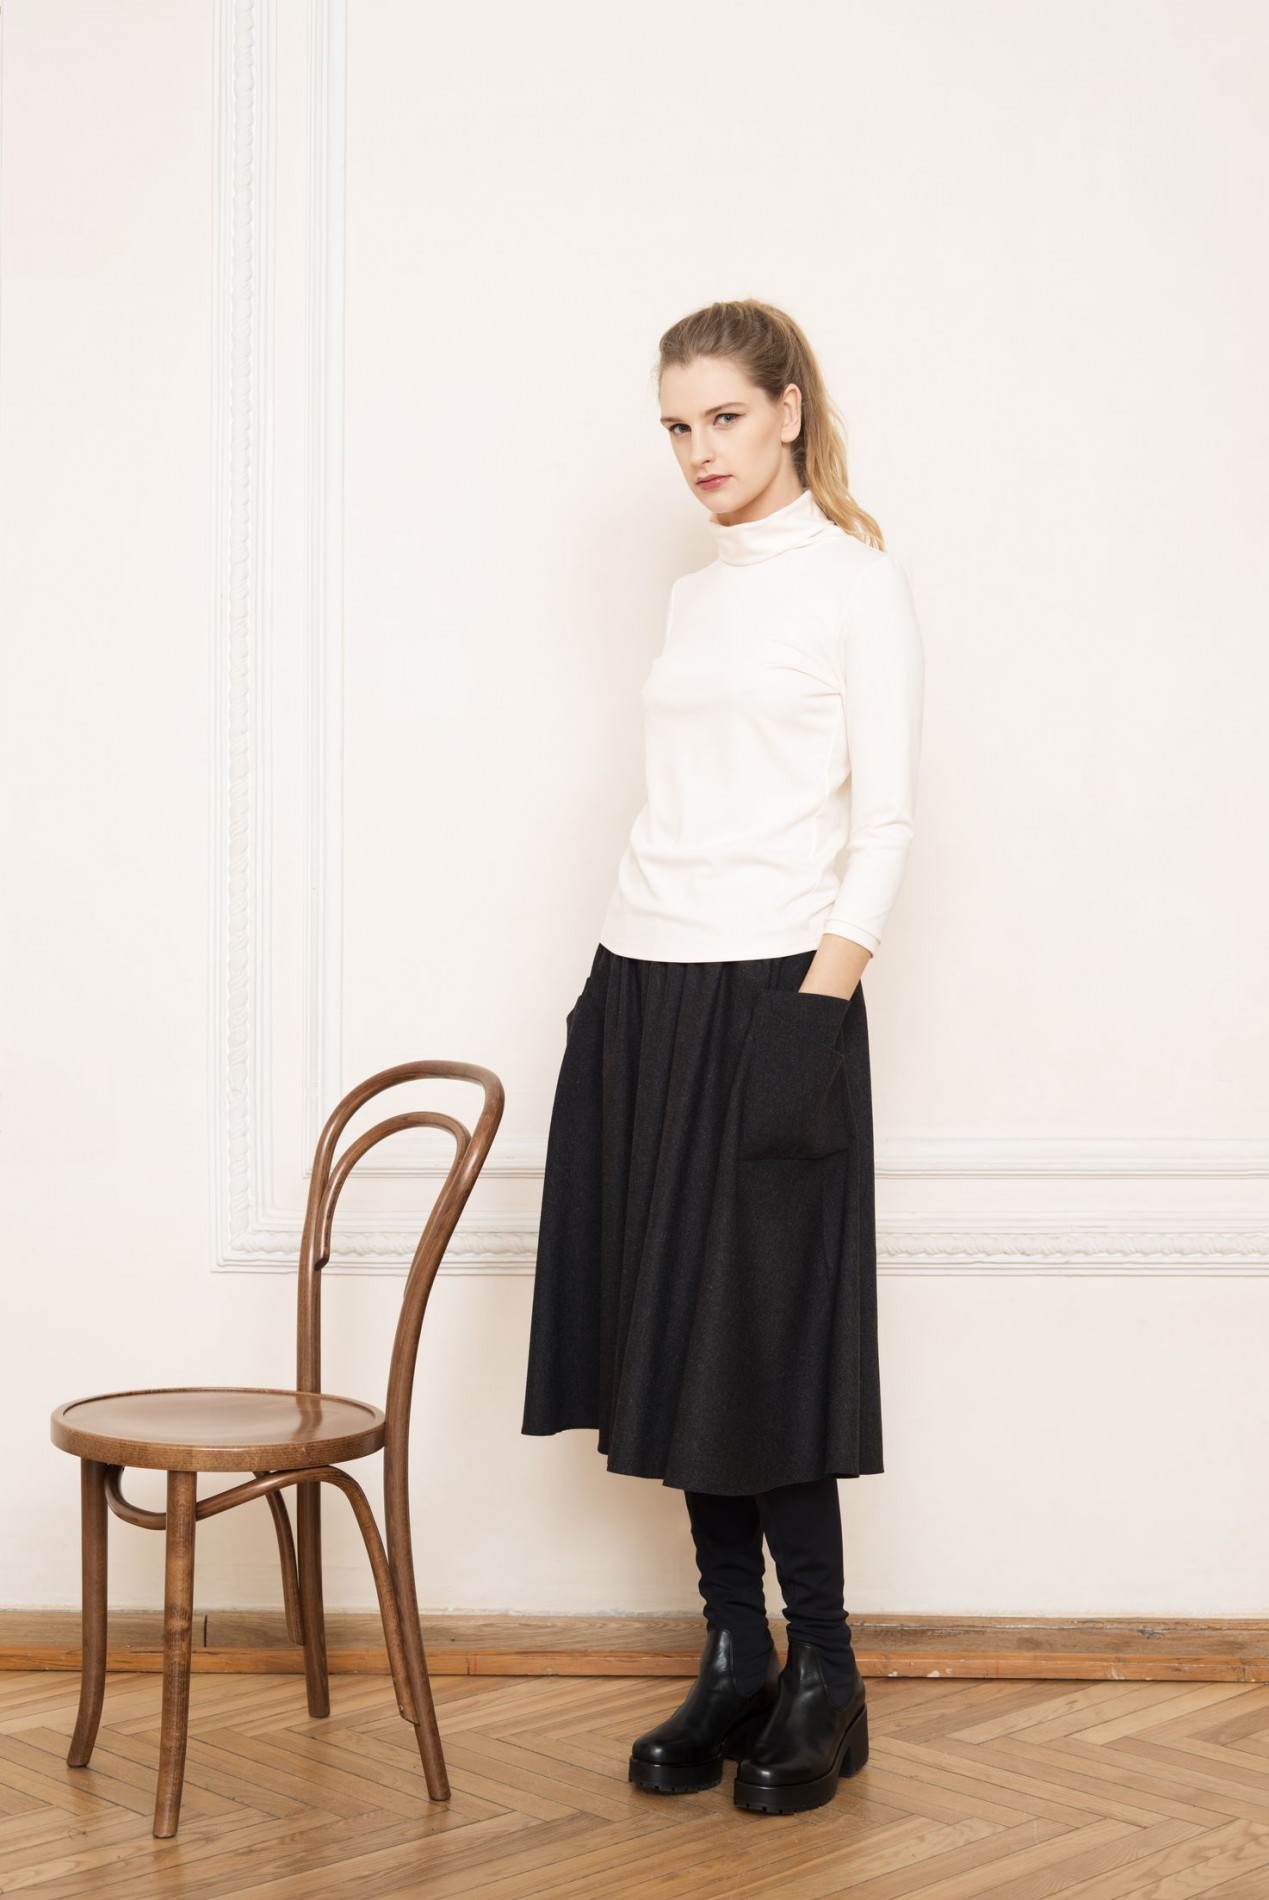 ANDES Turtle-neck Blouse and ALPS Flare Skirt